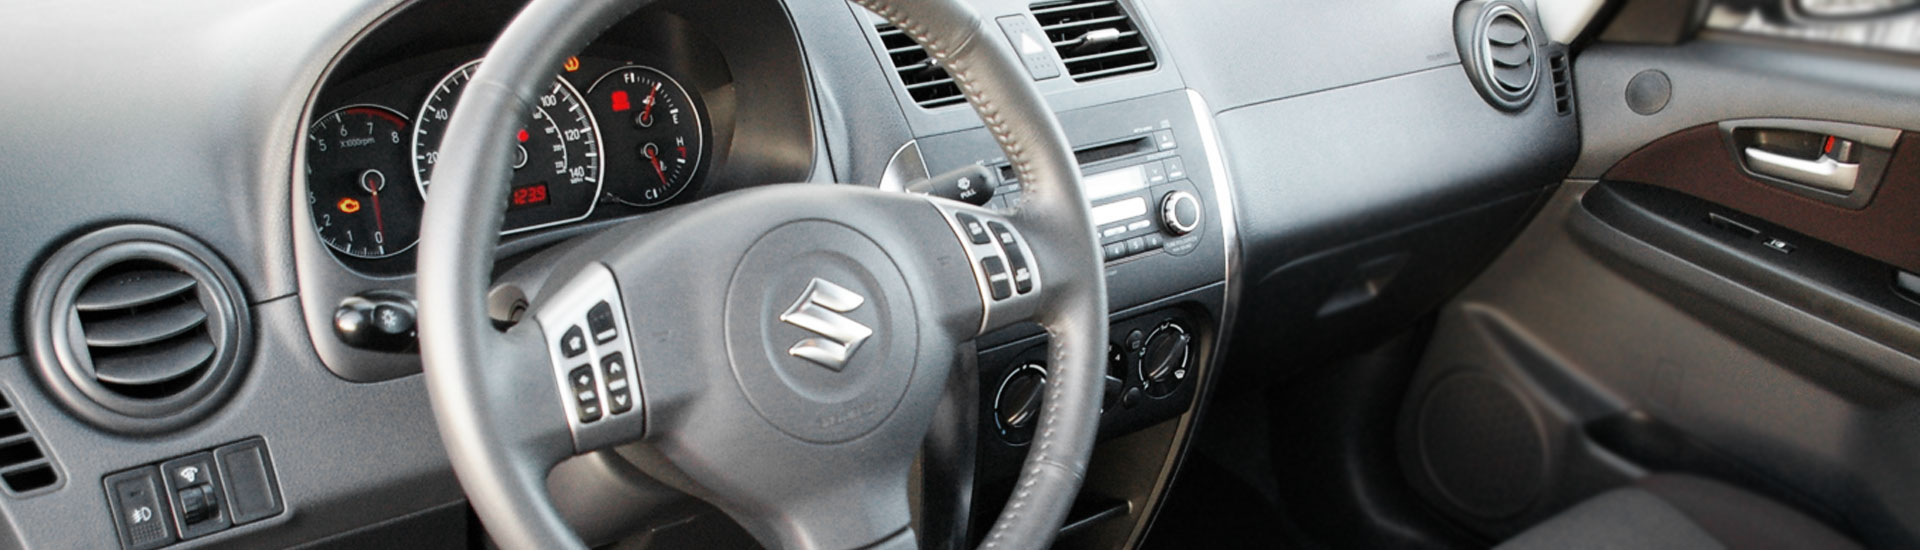 Suzuki SX4 Custom Dash Kits